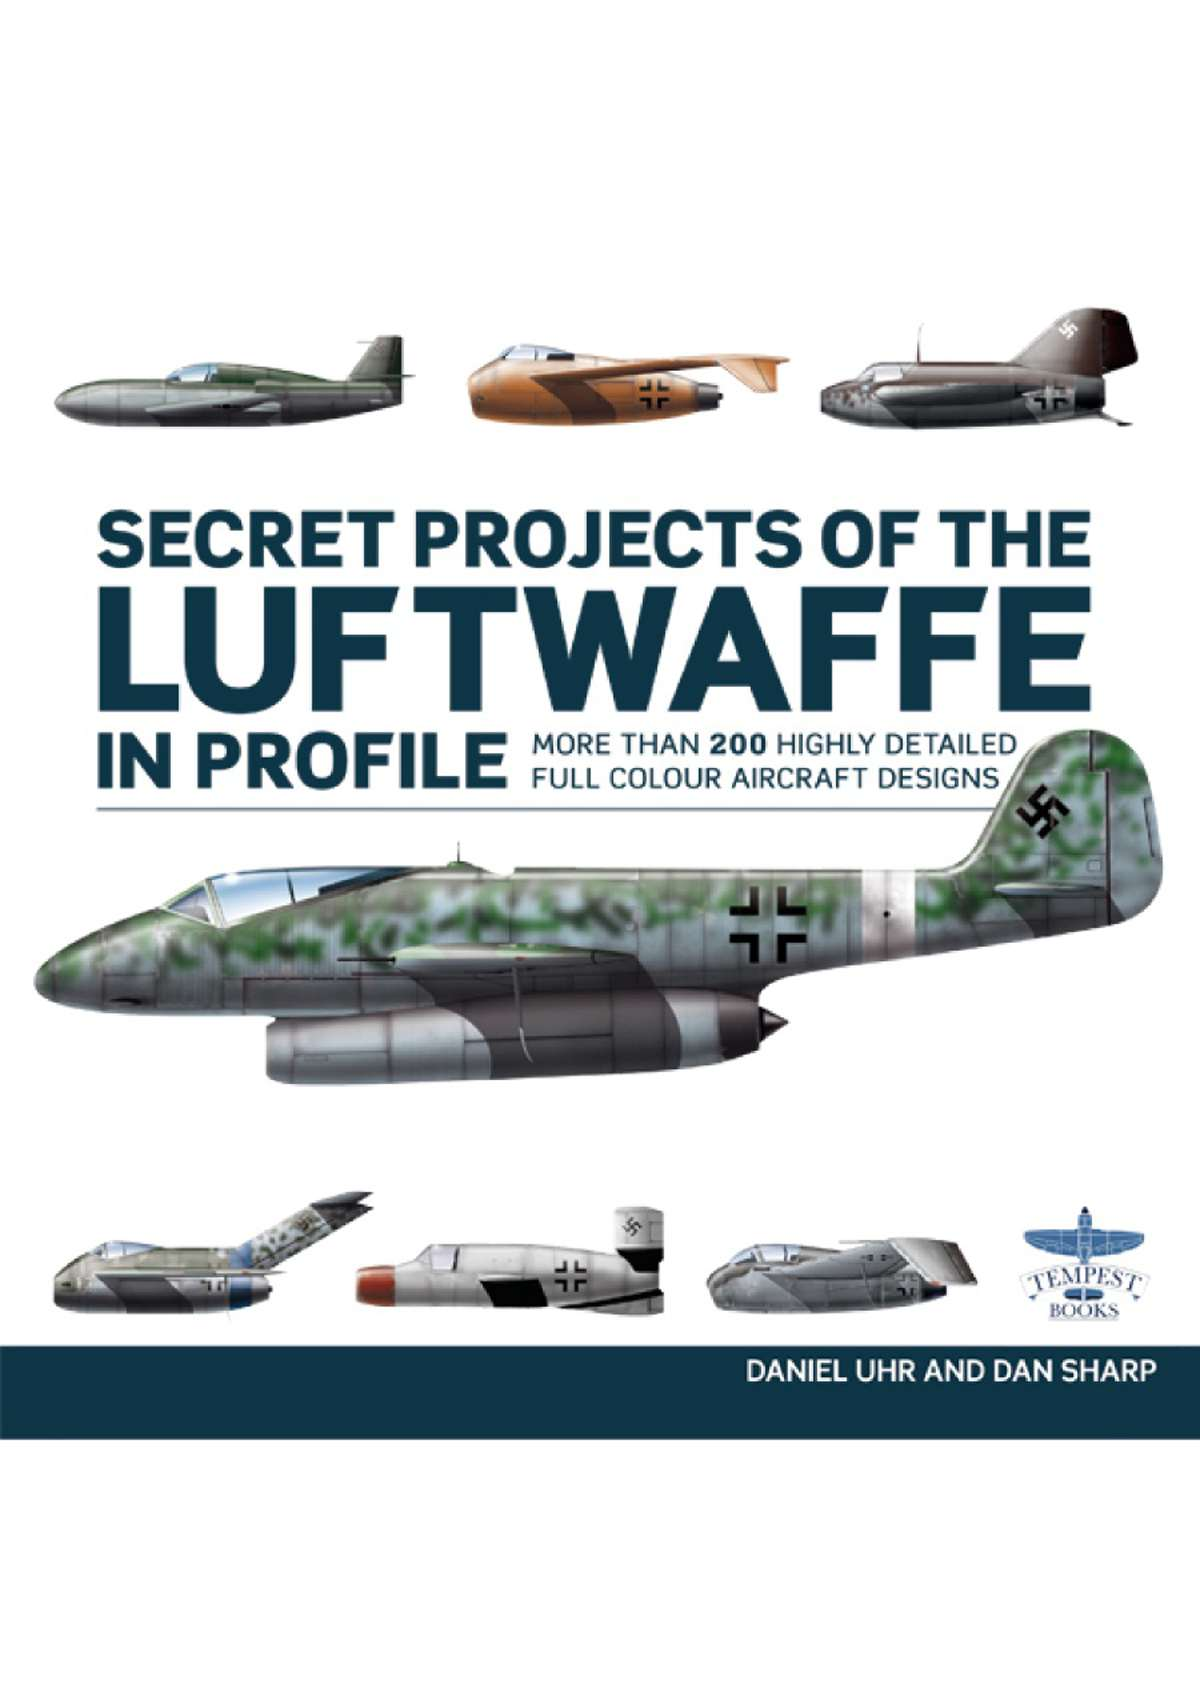 8627 - Secret Projects Of The Luftwaffe In Profile